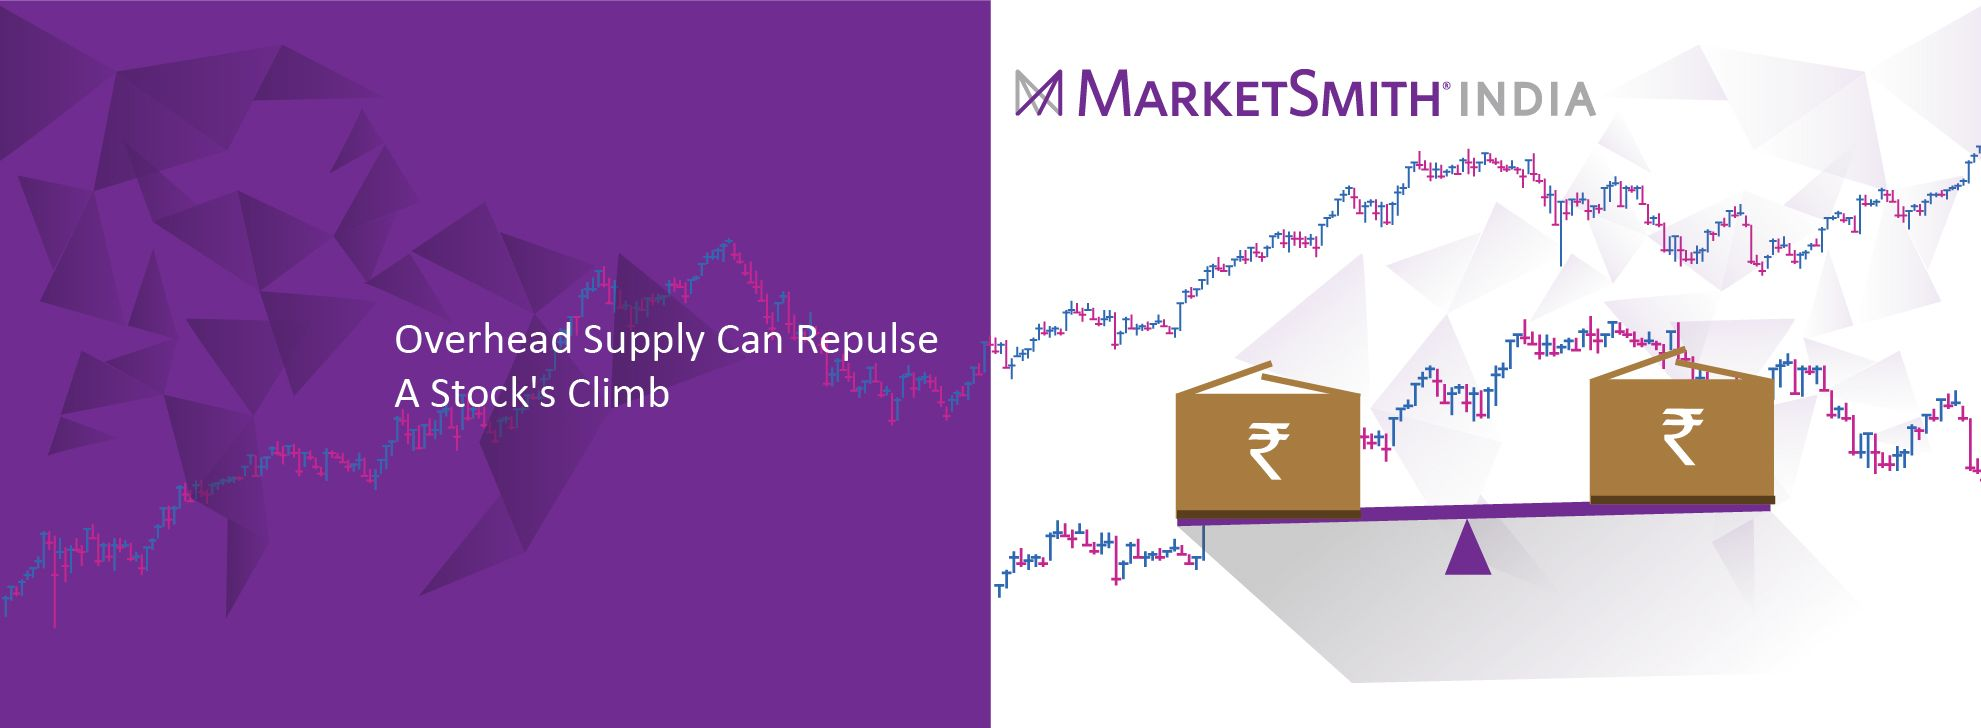 MarketSmith-India-Stock-Market-Research